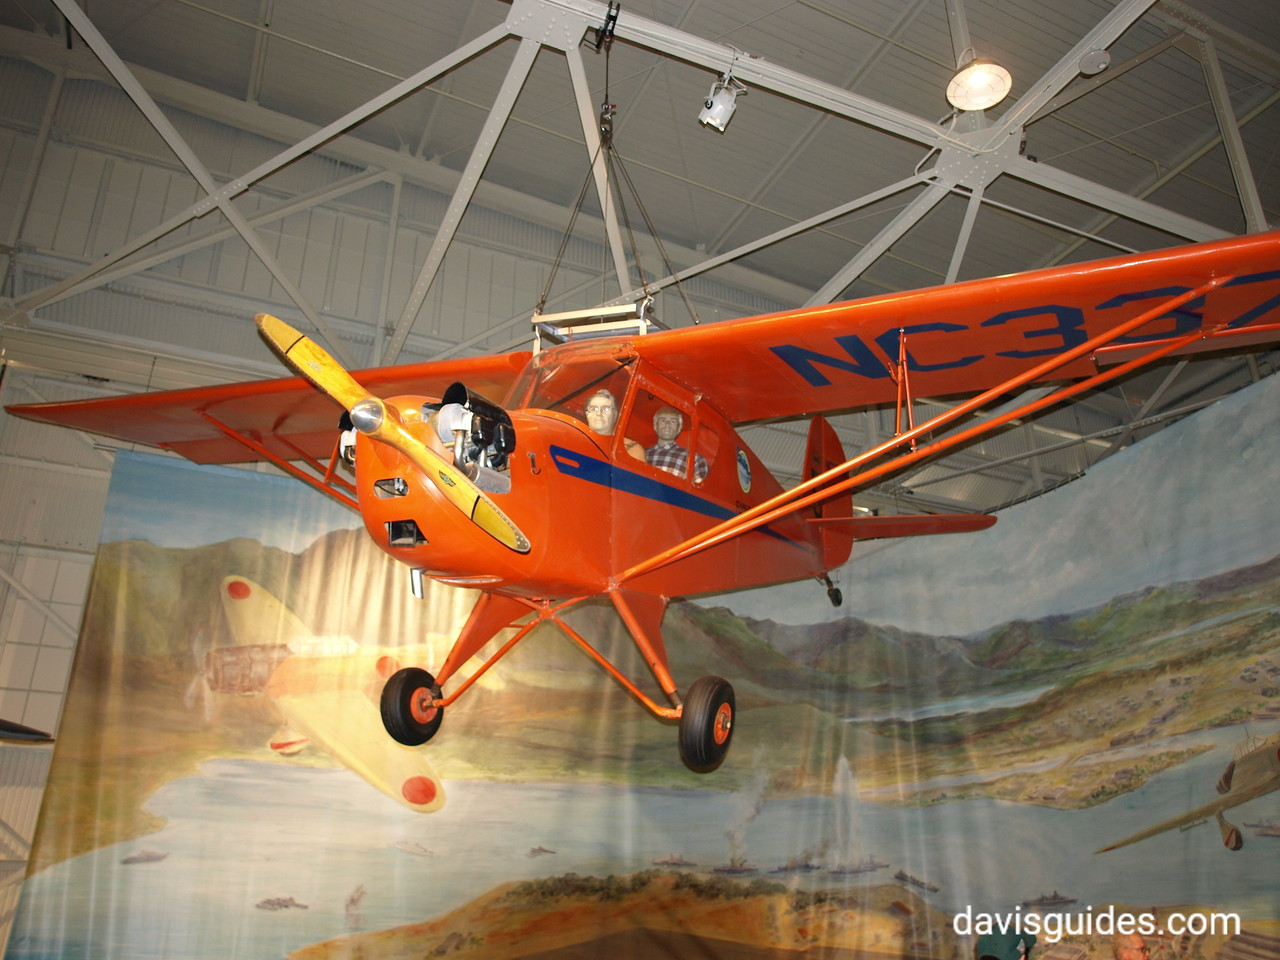 small plane that was flying above Honolulu on December 7, 1941, Pacific Aviation Museum, Pearl Harbor